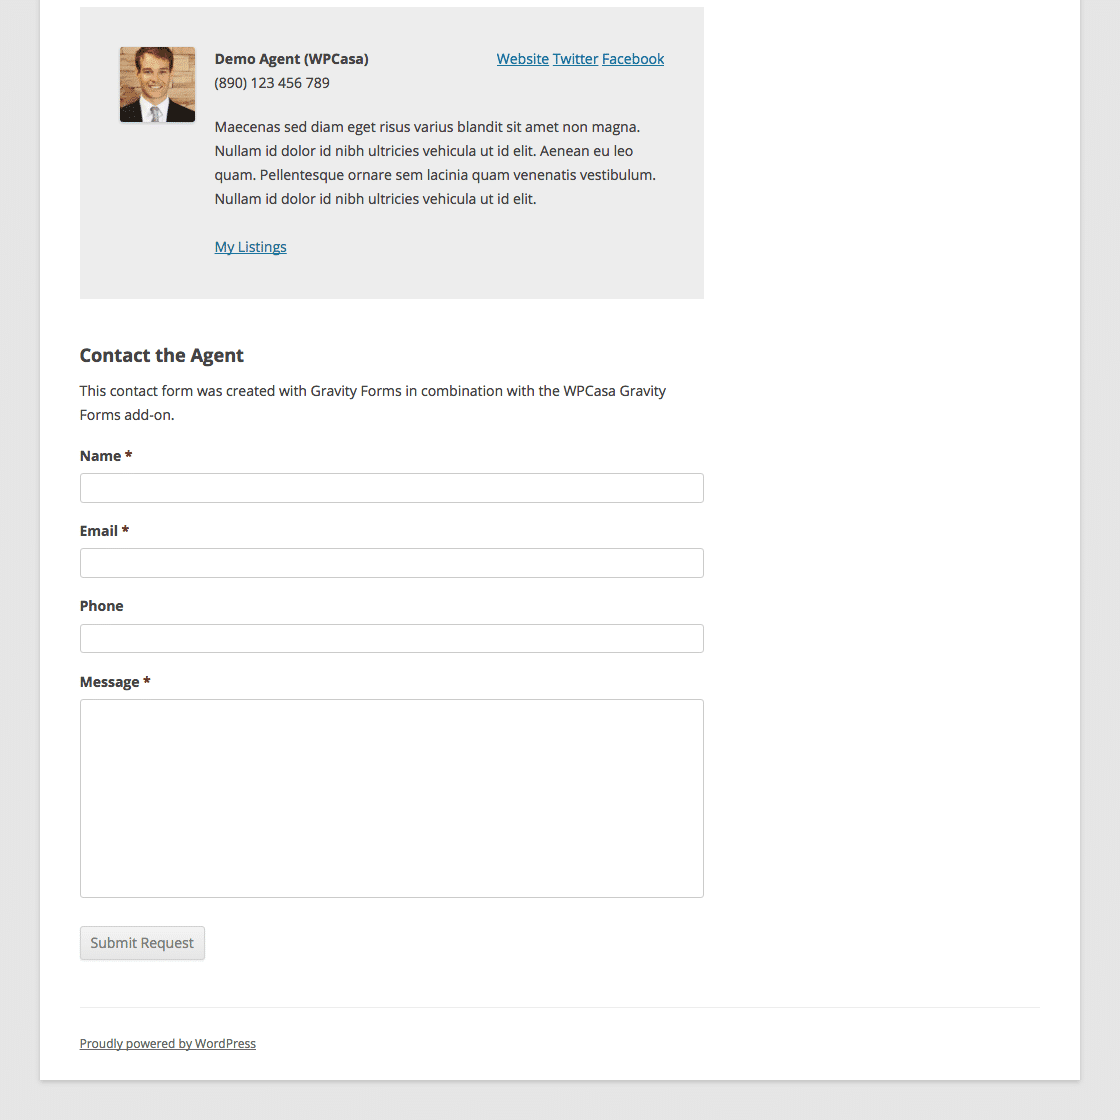 WPCasa Example Form